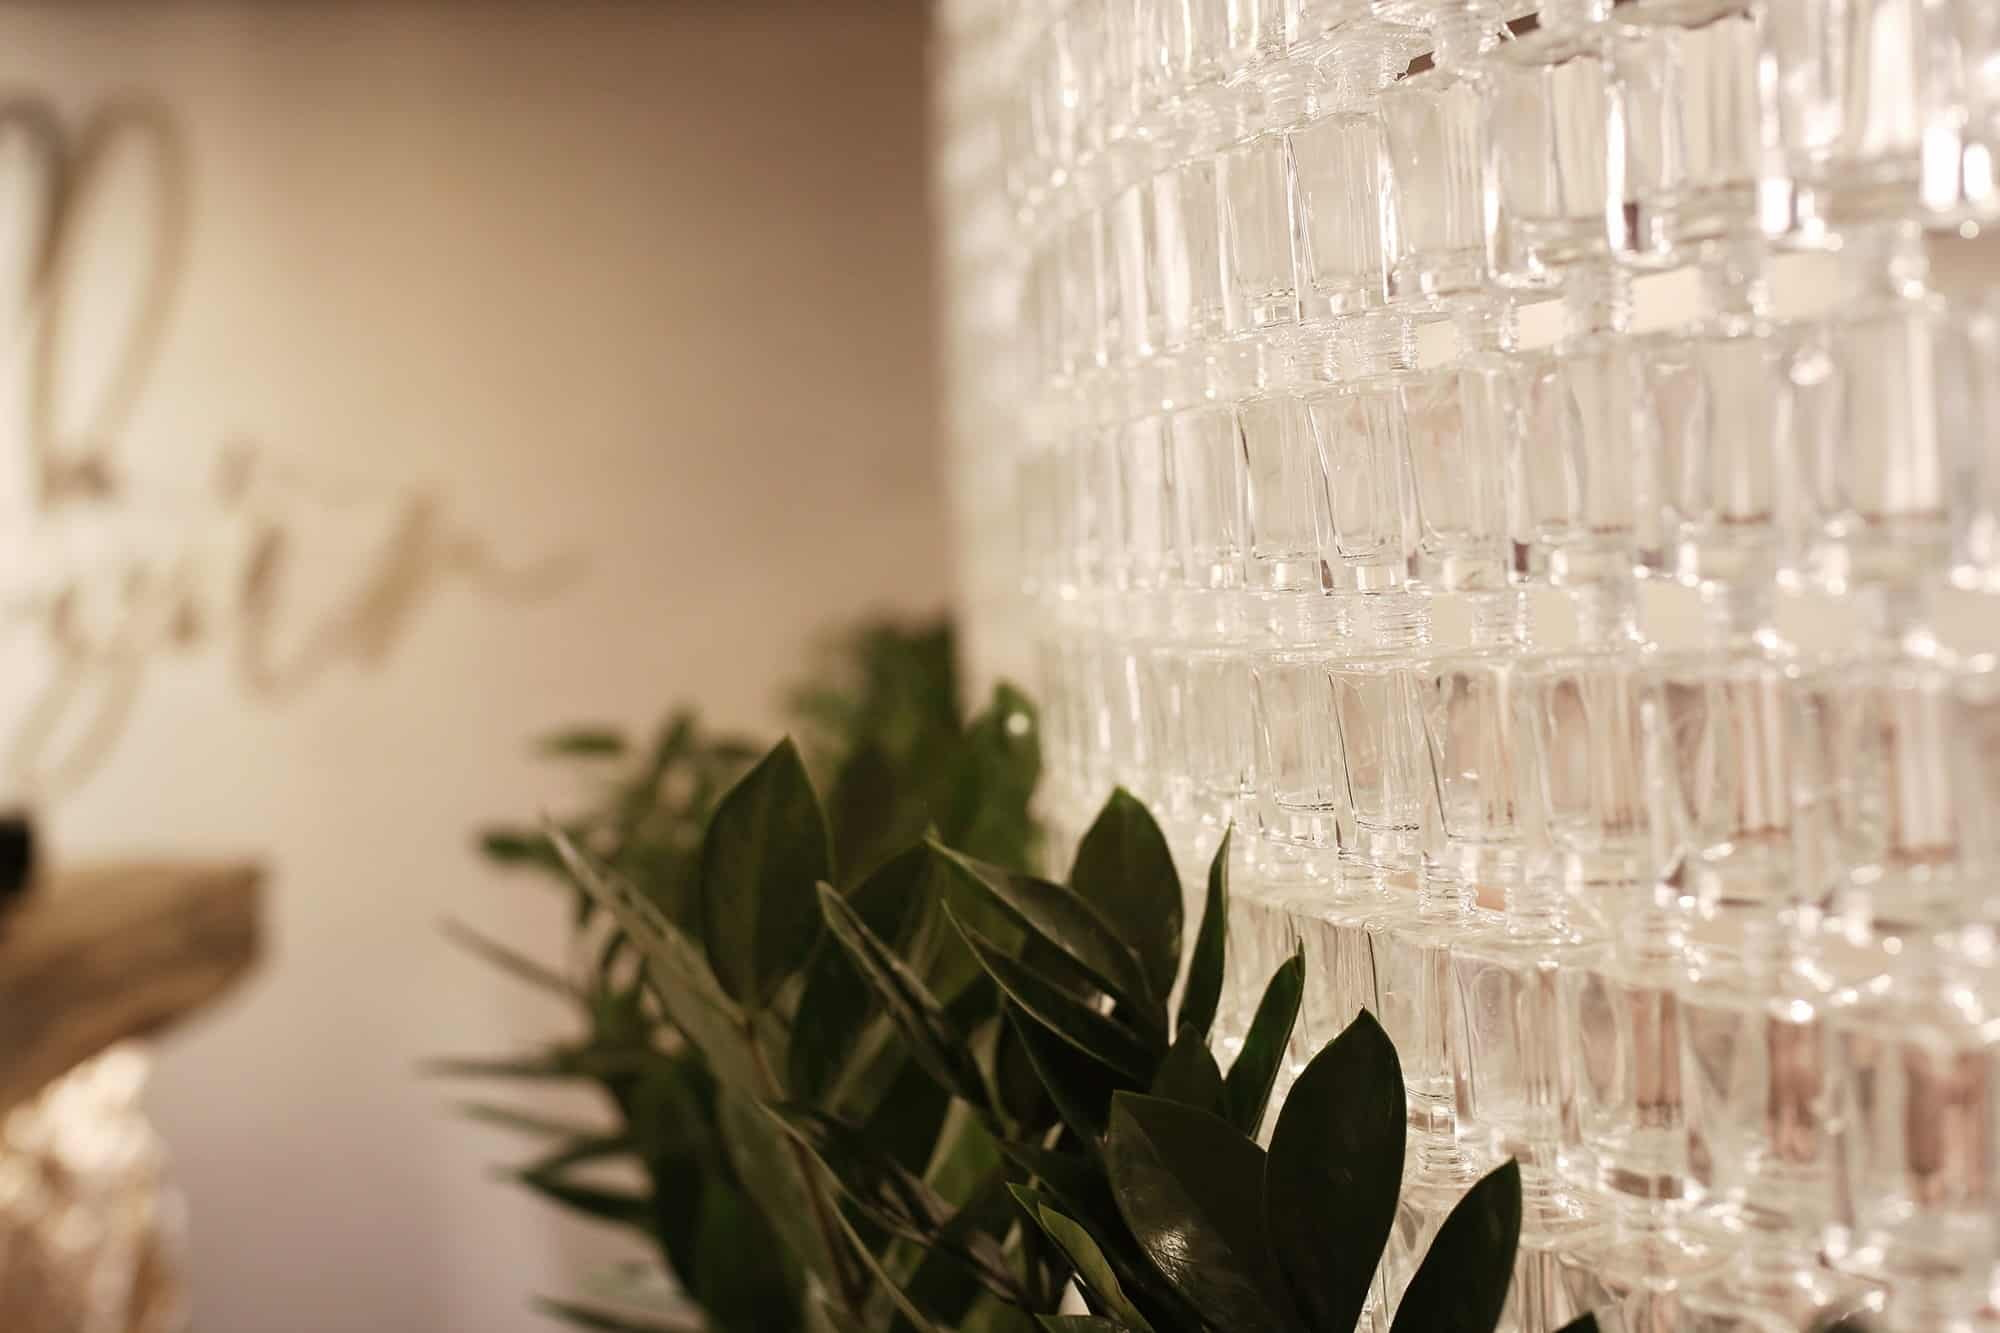 Nail polish bottles have been cut to form a dazzling glass wall inside the Angel Salon.